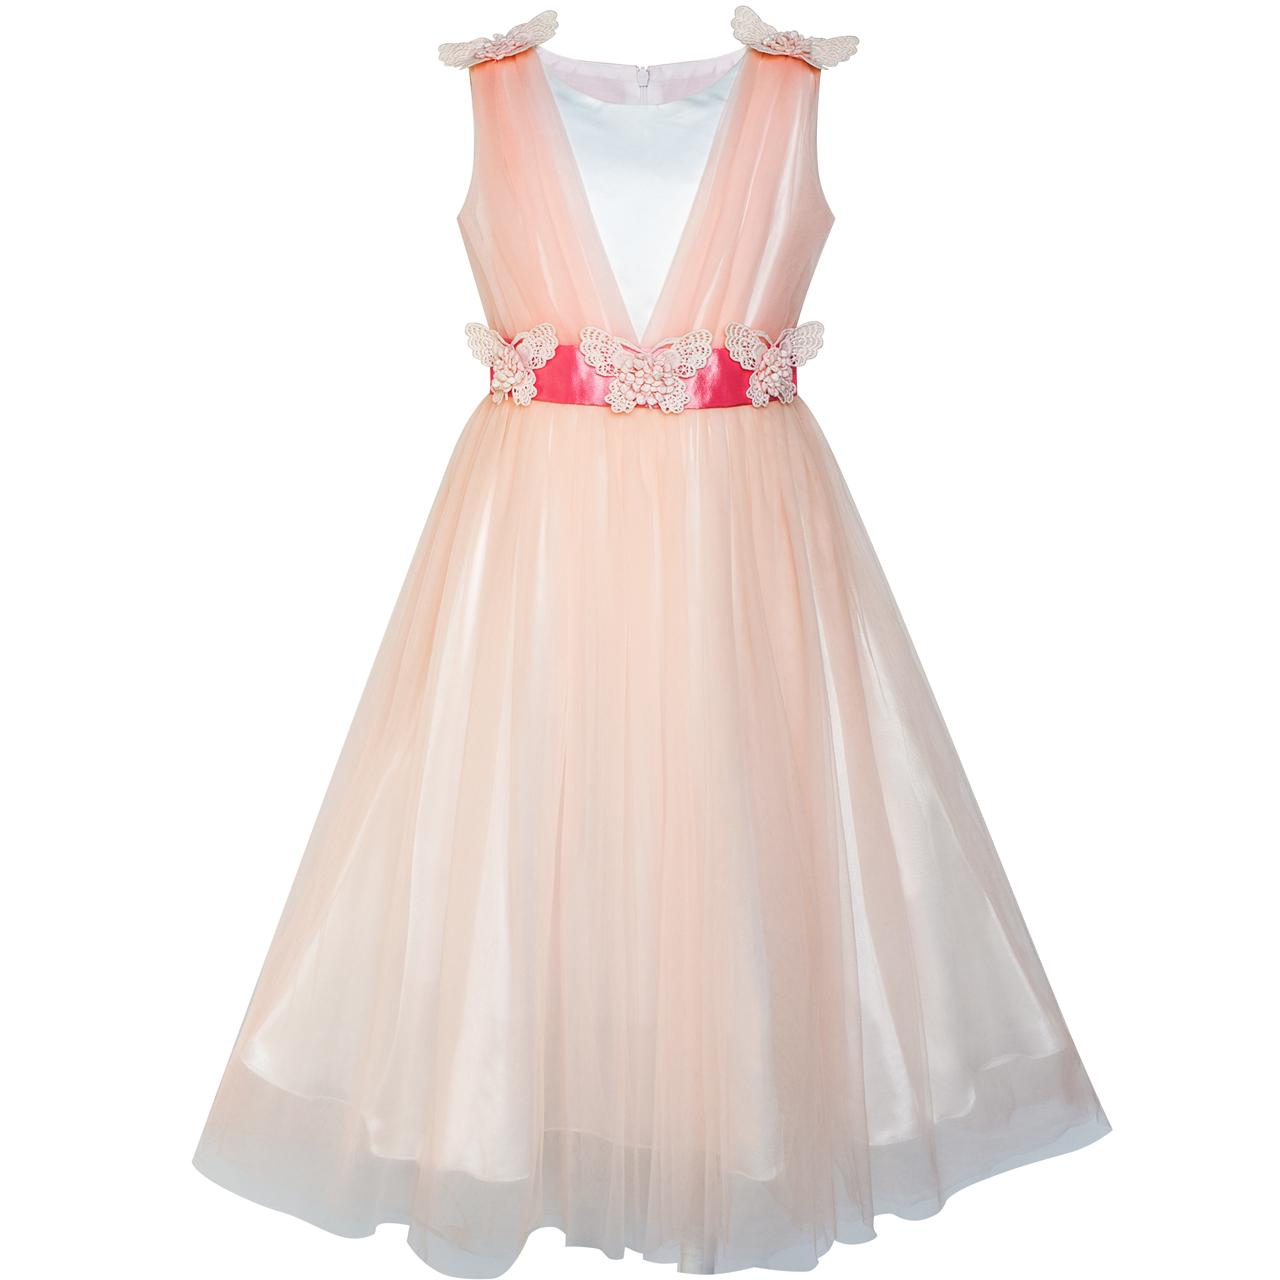 Sunny Fashion Flower Girls Dress Peach Ruffle Butterfly Wedding Bridesmaid 2018 Summer Princess Party Dresses Clothes Size 6-14 sunny fashion flower girls dress peach ruffle butterfly wedding bridesmaid 2018 summer princess party dresses clothes size 6 14